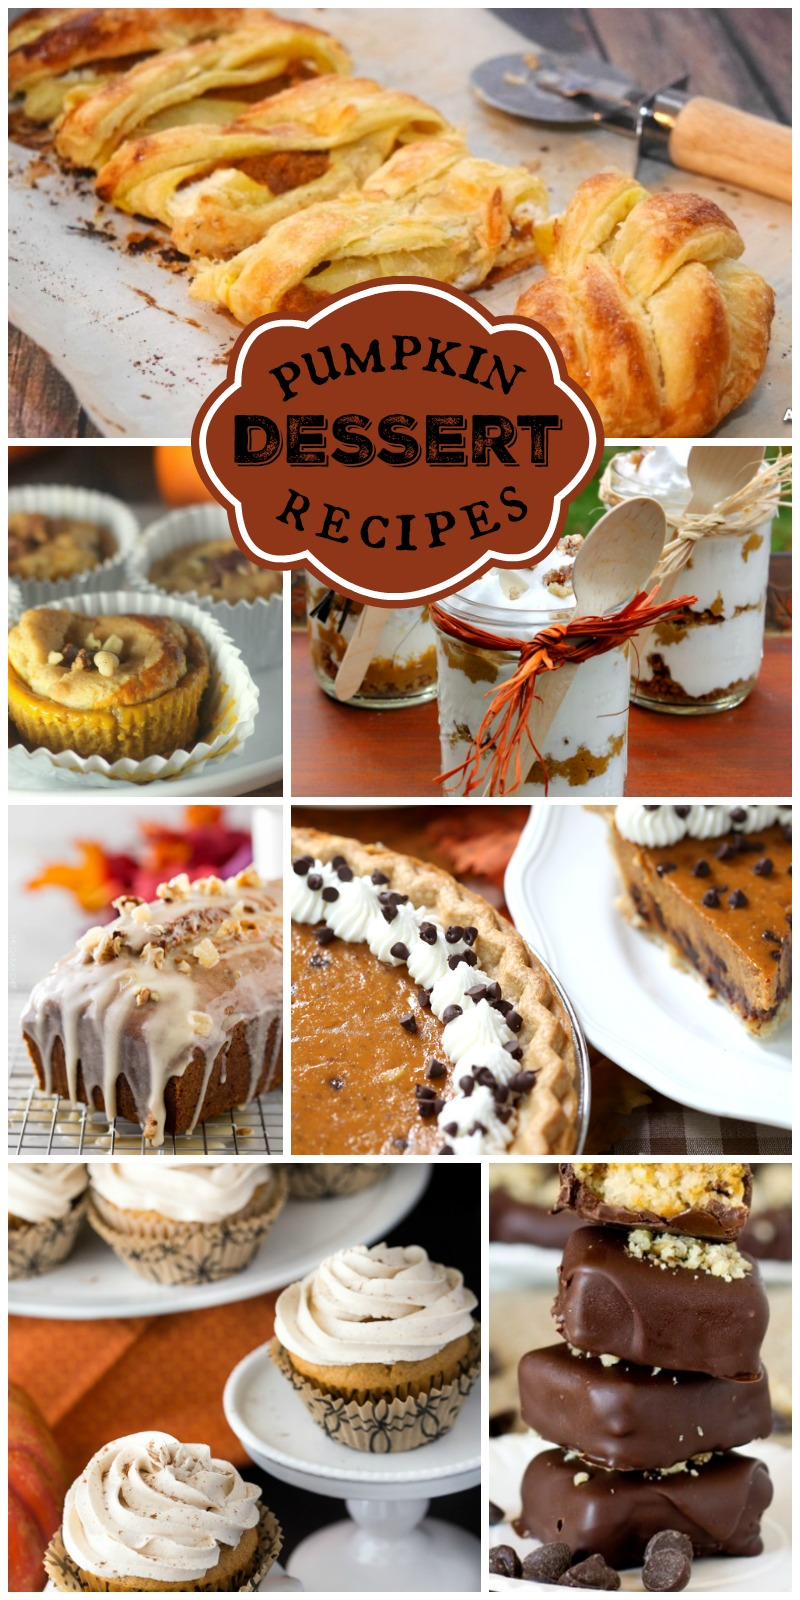 Do you love pumpkin dessert recipes? We are sharing over 50 pumpkin recipes that will make the pumpkin lover in you so happy.